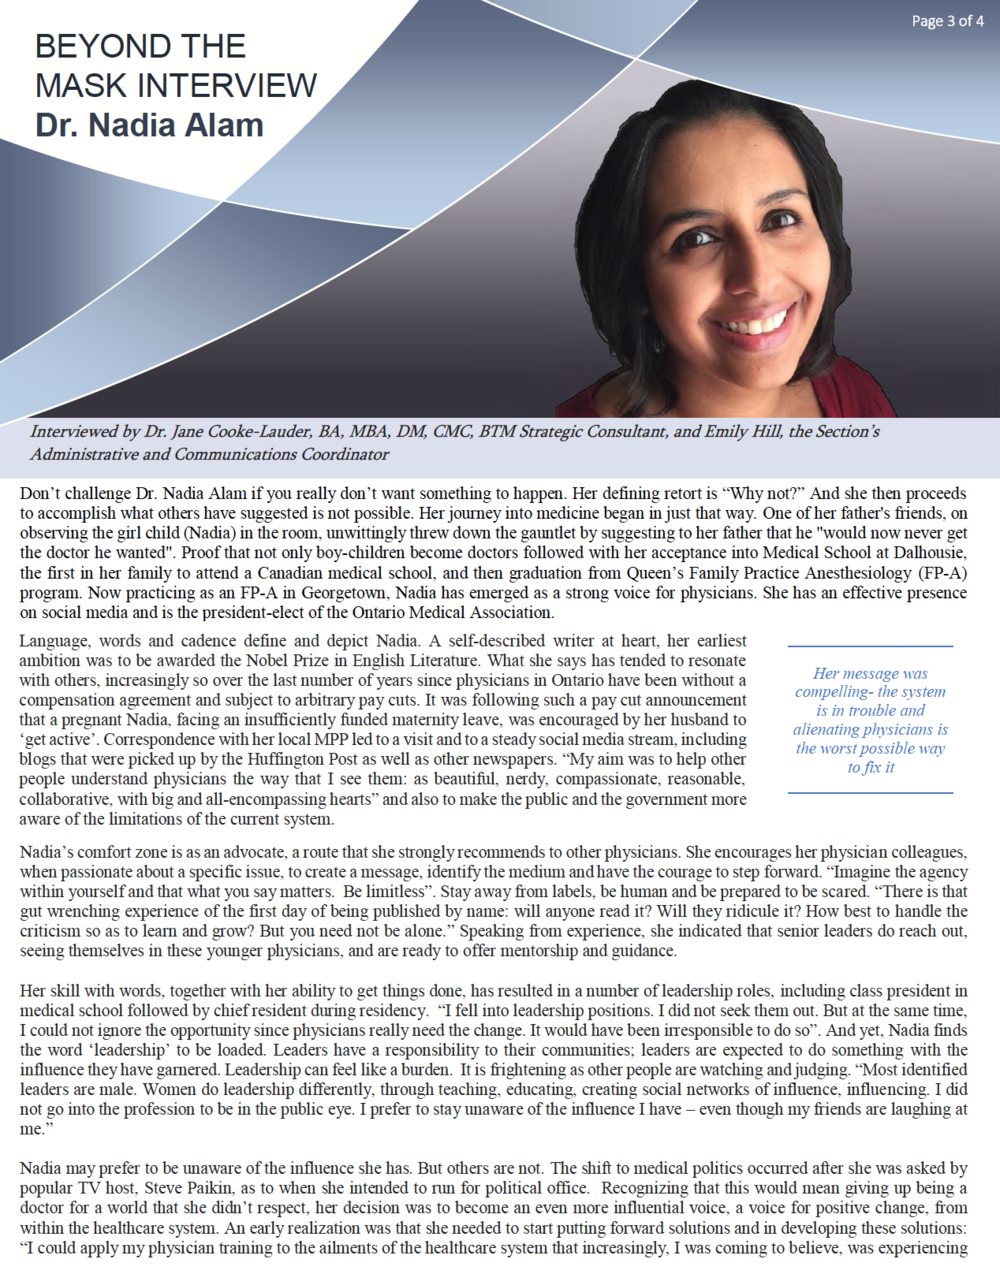 Dr. Nadia Alam - Winter 2018 Interview